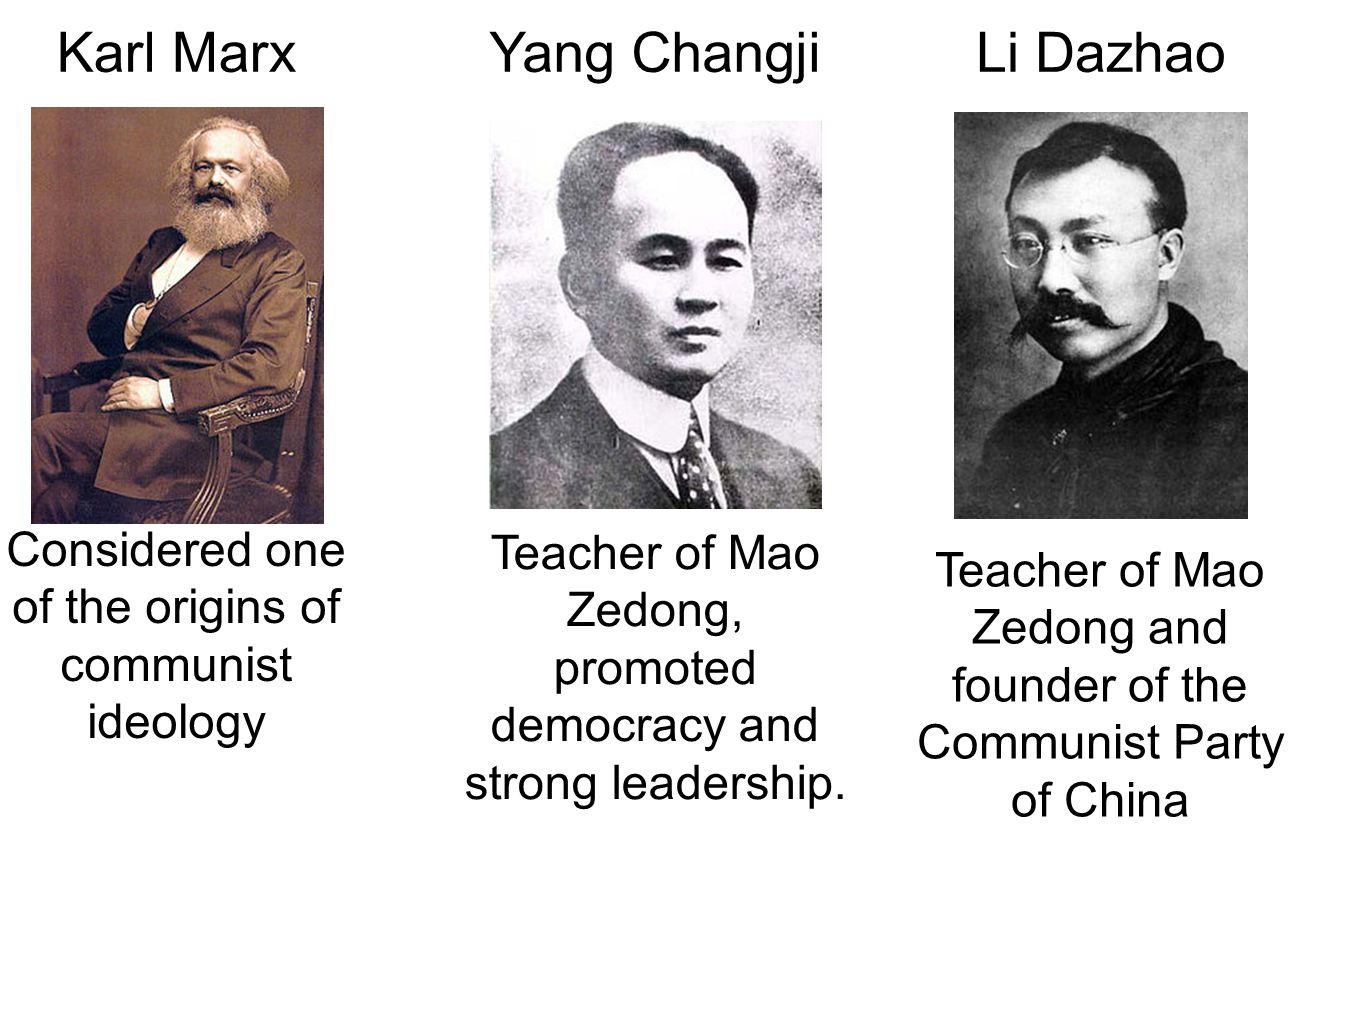 Summary Mao Zedong took advantage of China's lack of unity, political instability, and domination by foreign powers to gain support from the people of China Mao's communist ideology was shaped by his families experience and the teachings of Yang Changji, Li Dazhao, and Karl Marx, but when put into practice they were destructive instead of accomplishing their intended goals